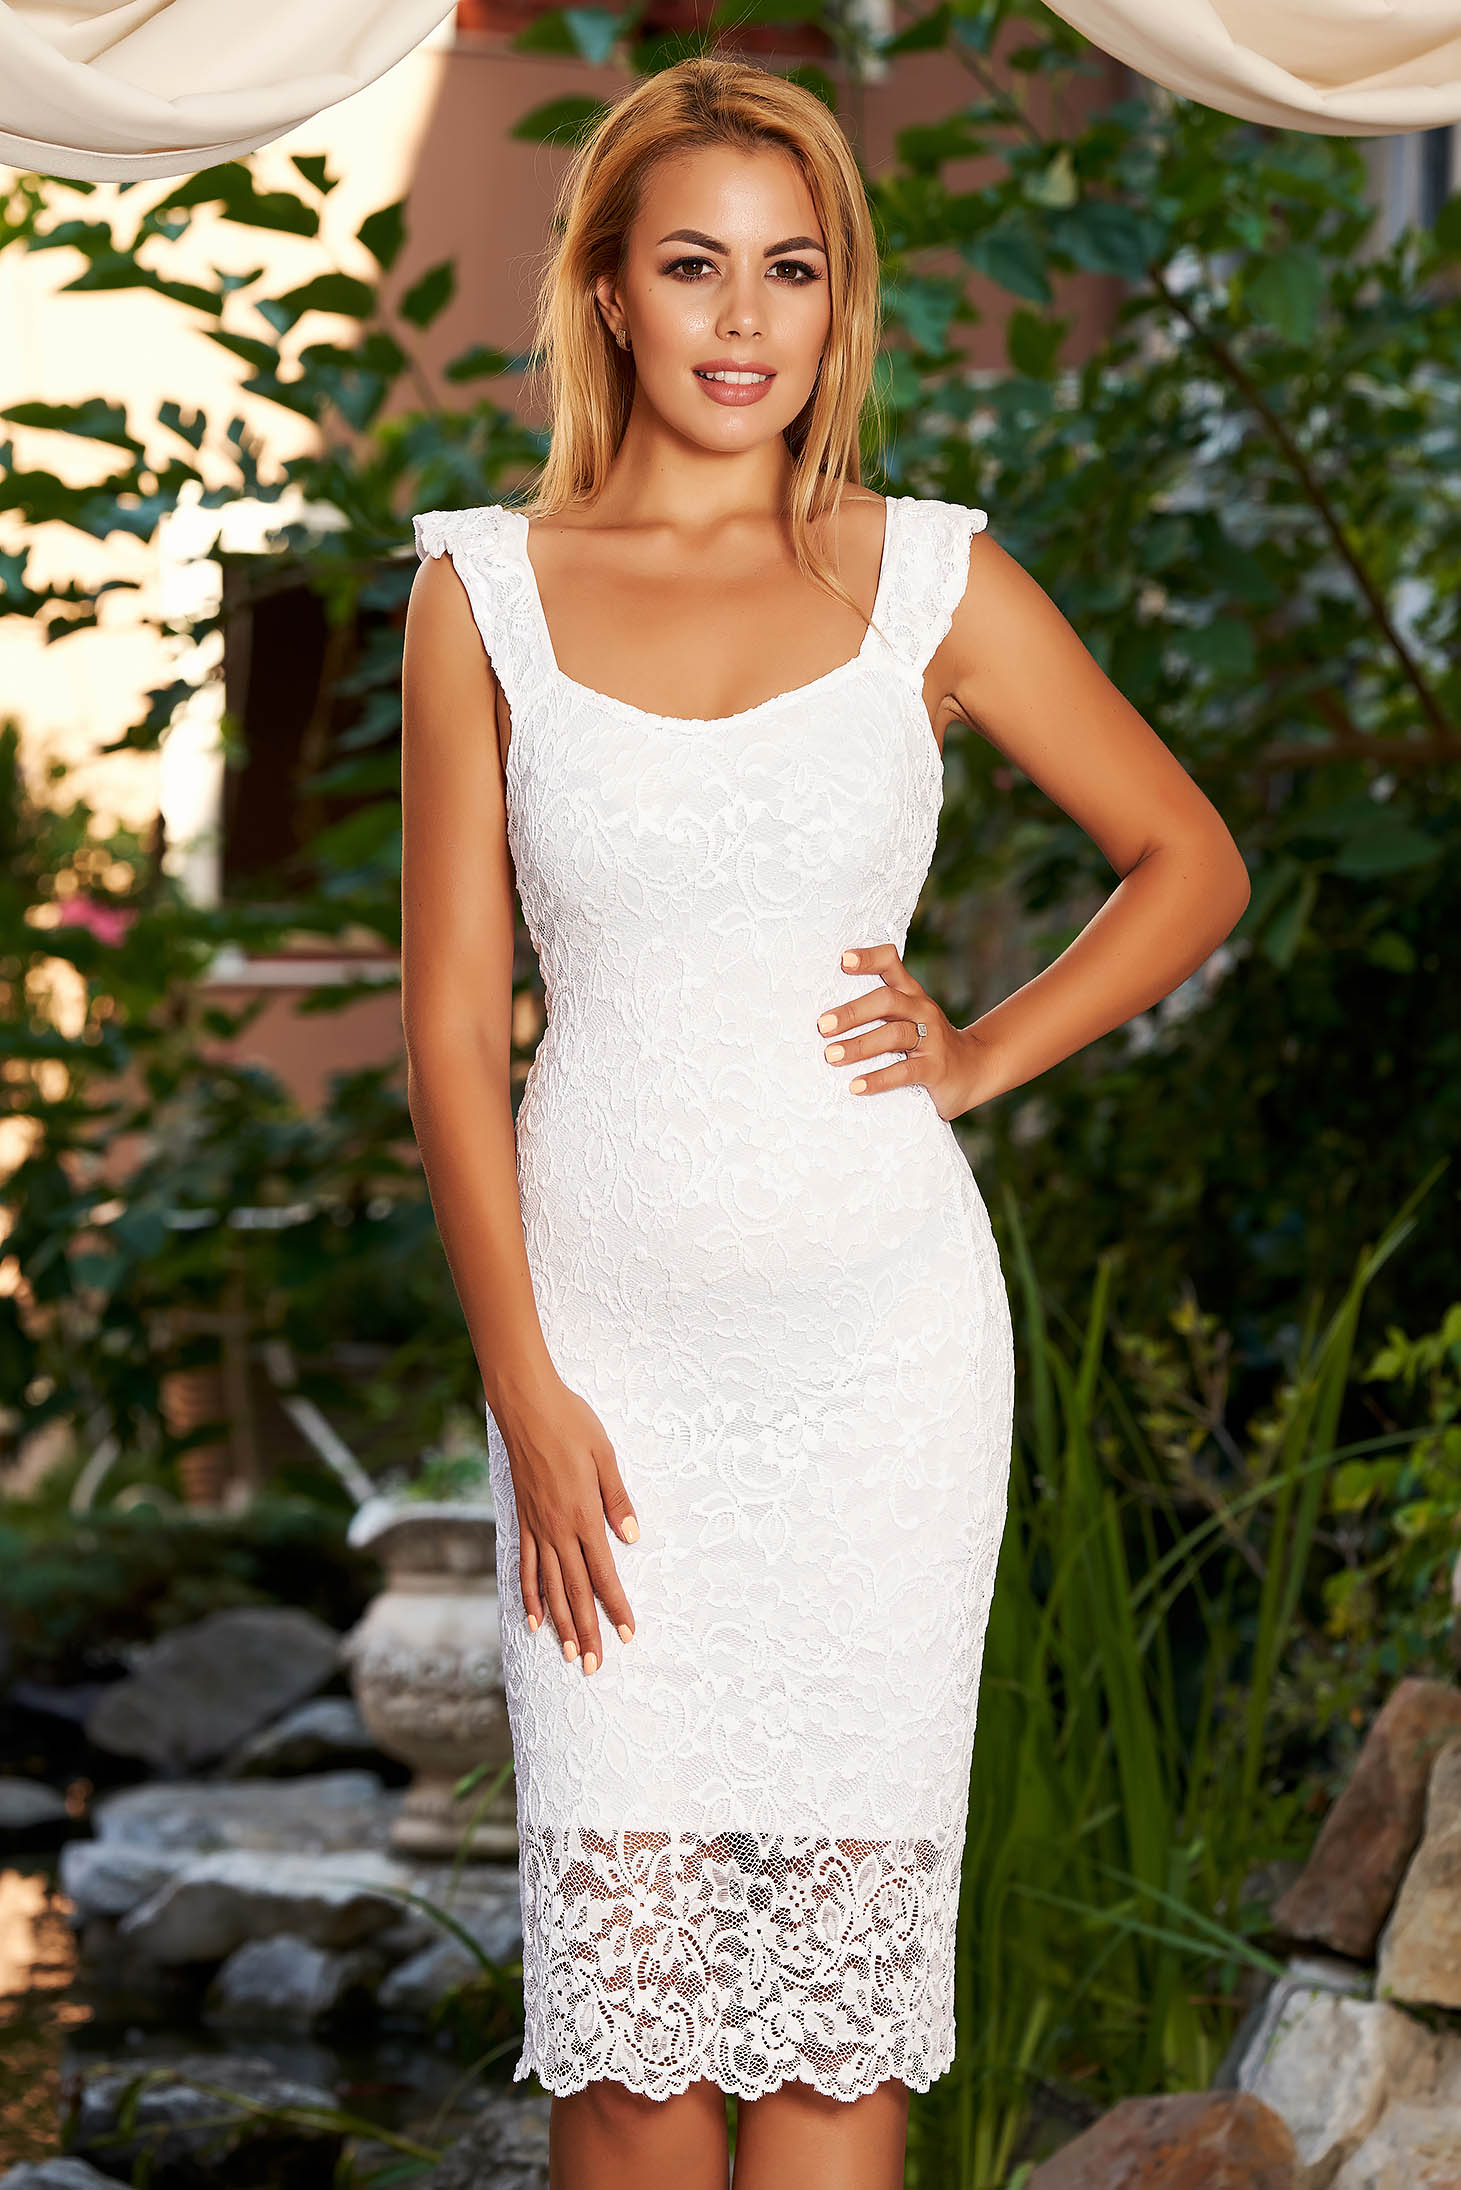 StarShinerS white dress daily midi laced with rounded cleavage frilly straps